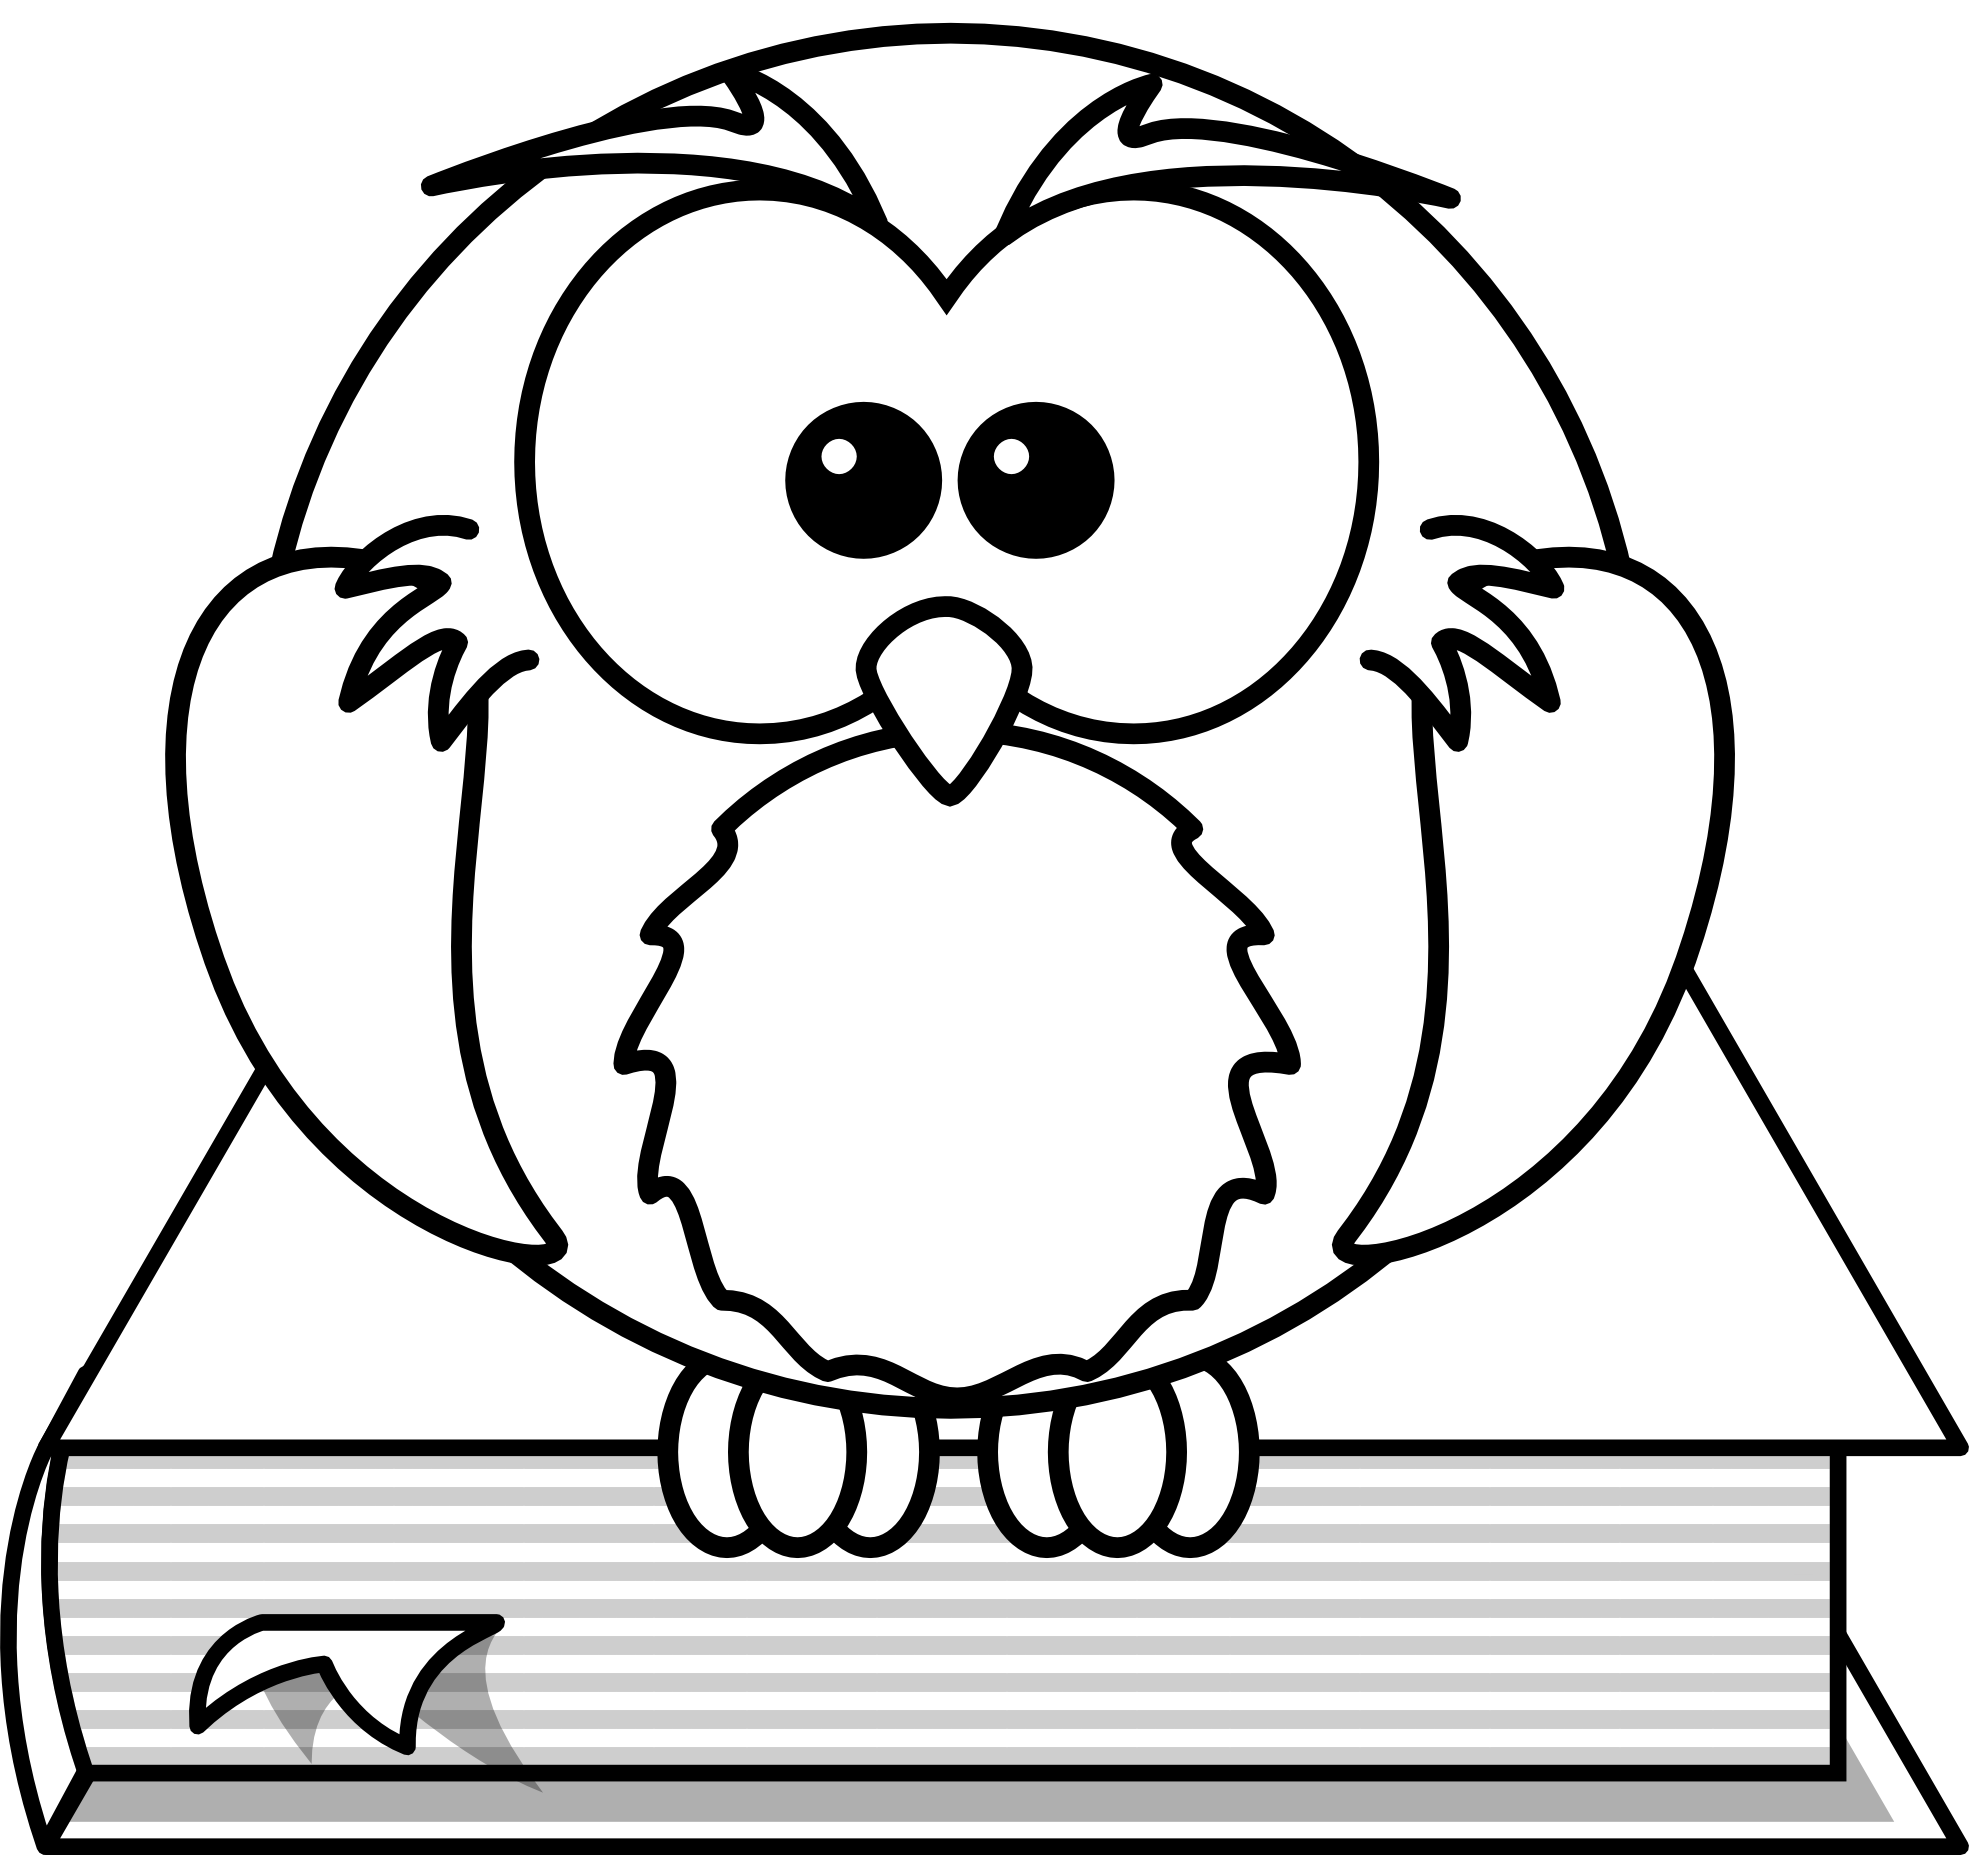 Textbook clipart black and white. Owl panda free images